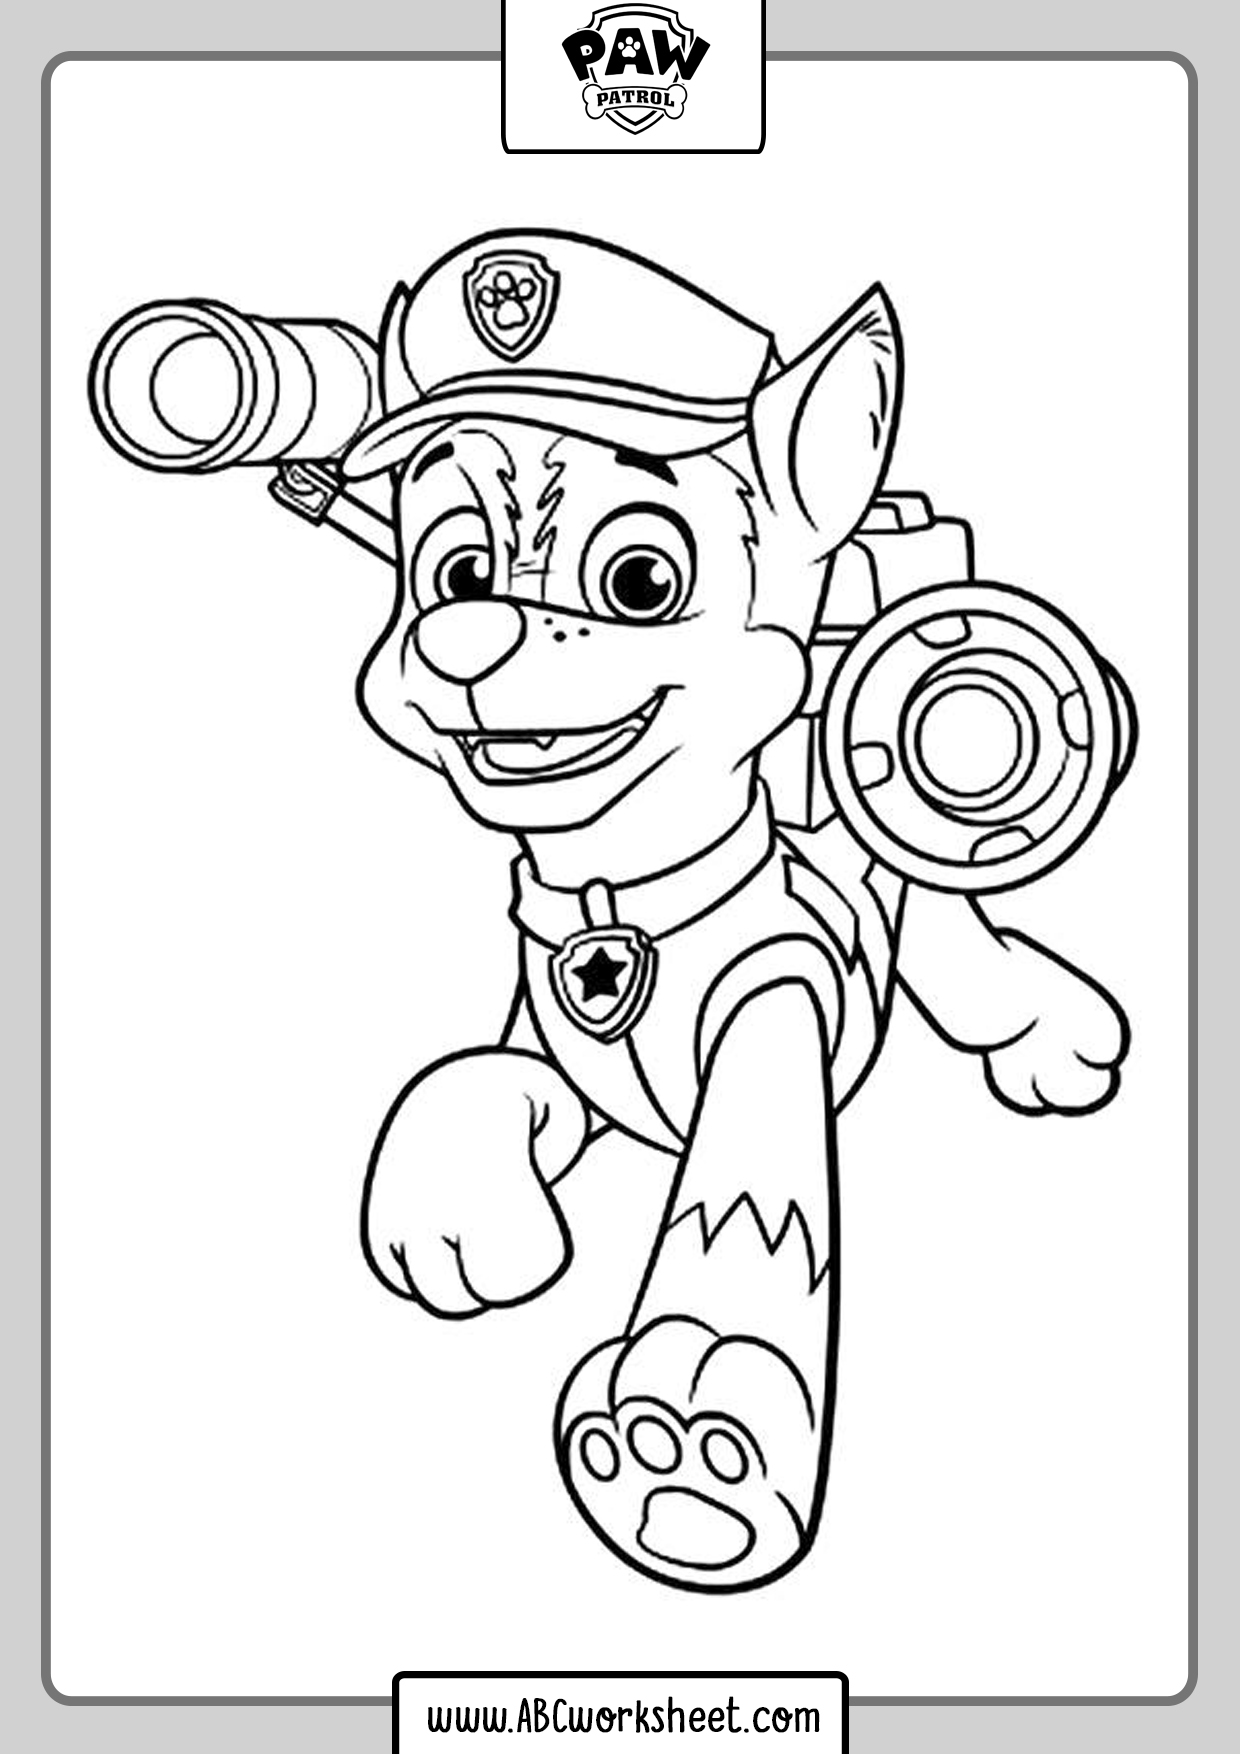 Paw Patrol Drawings To Coloring Chase